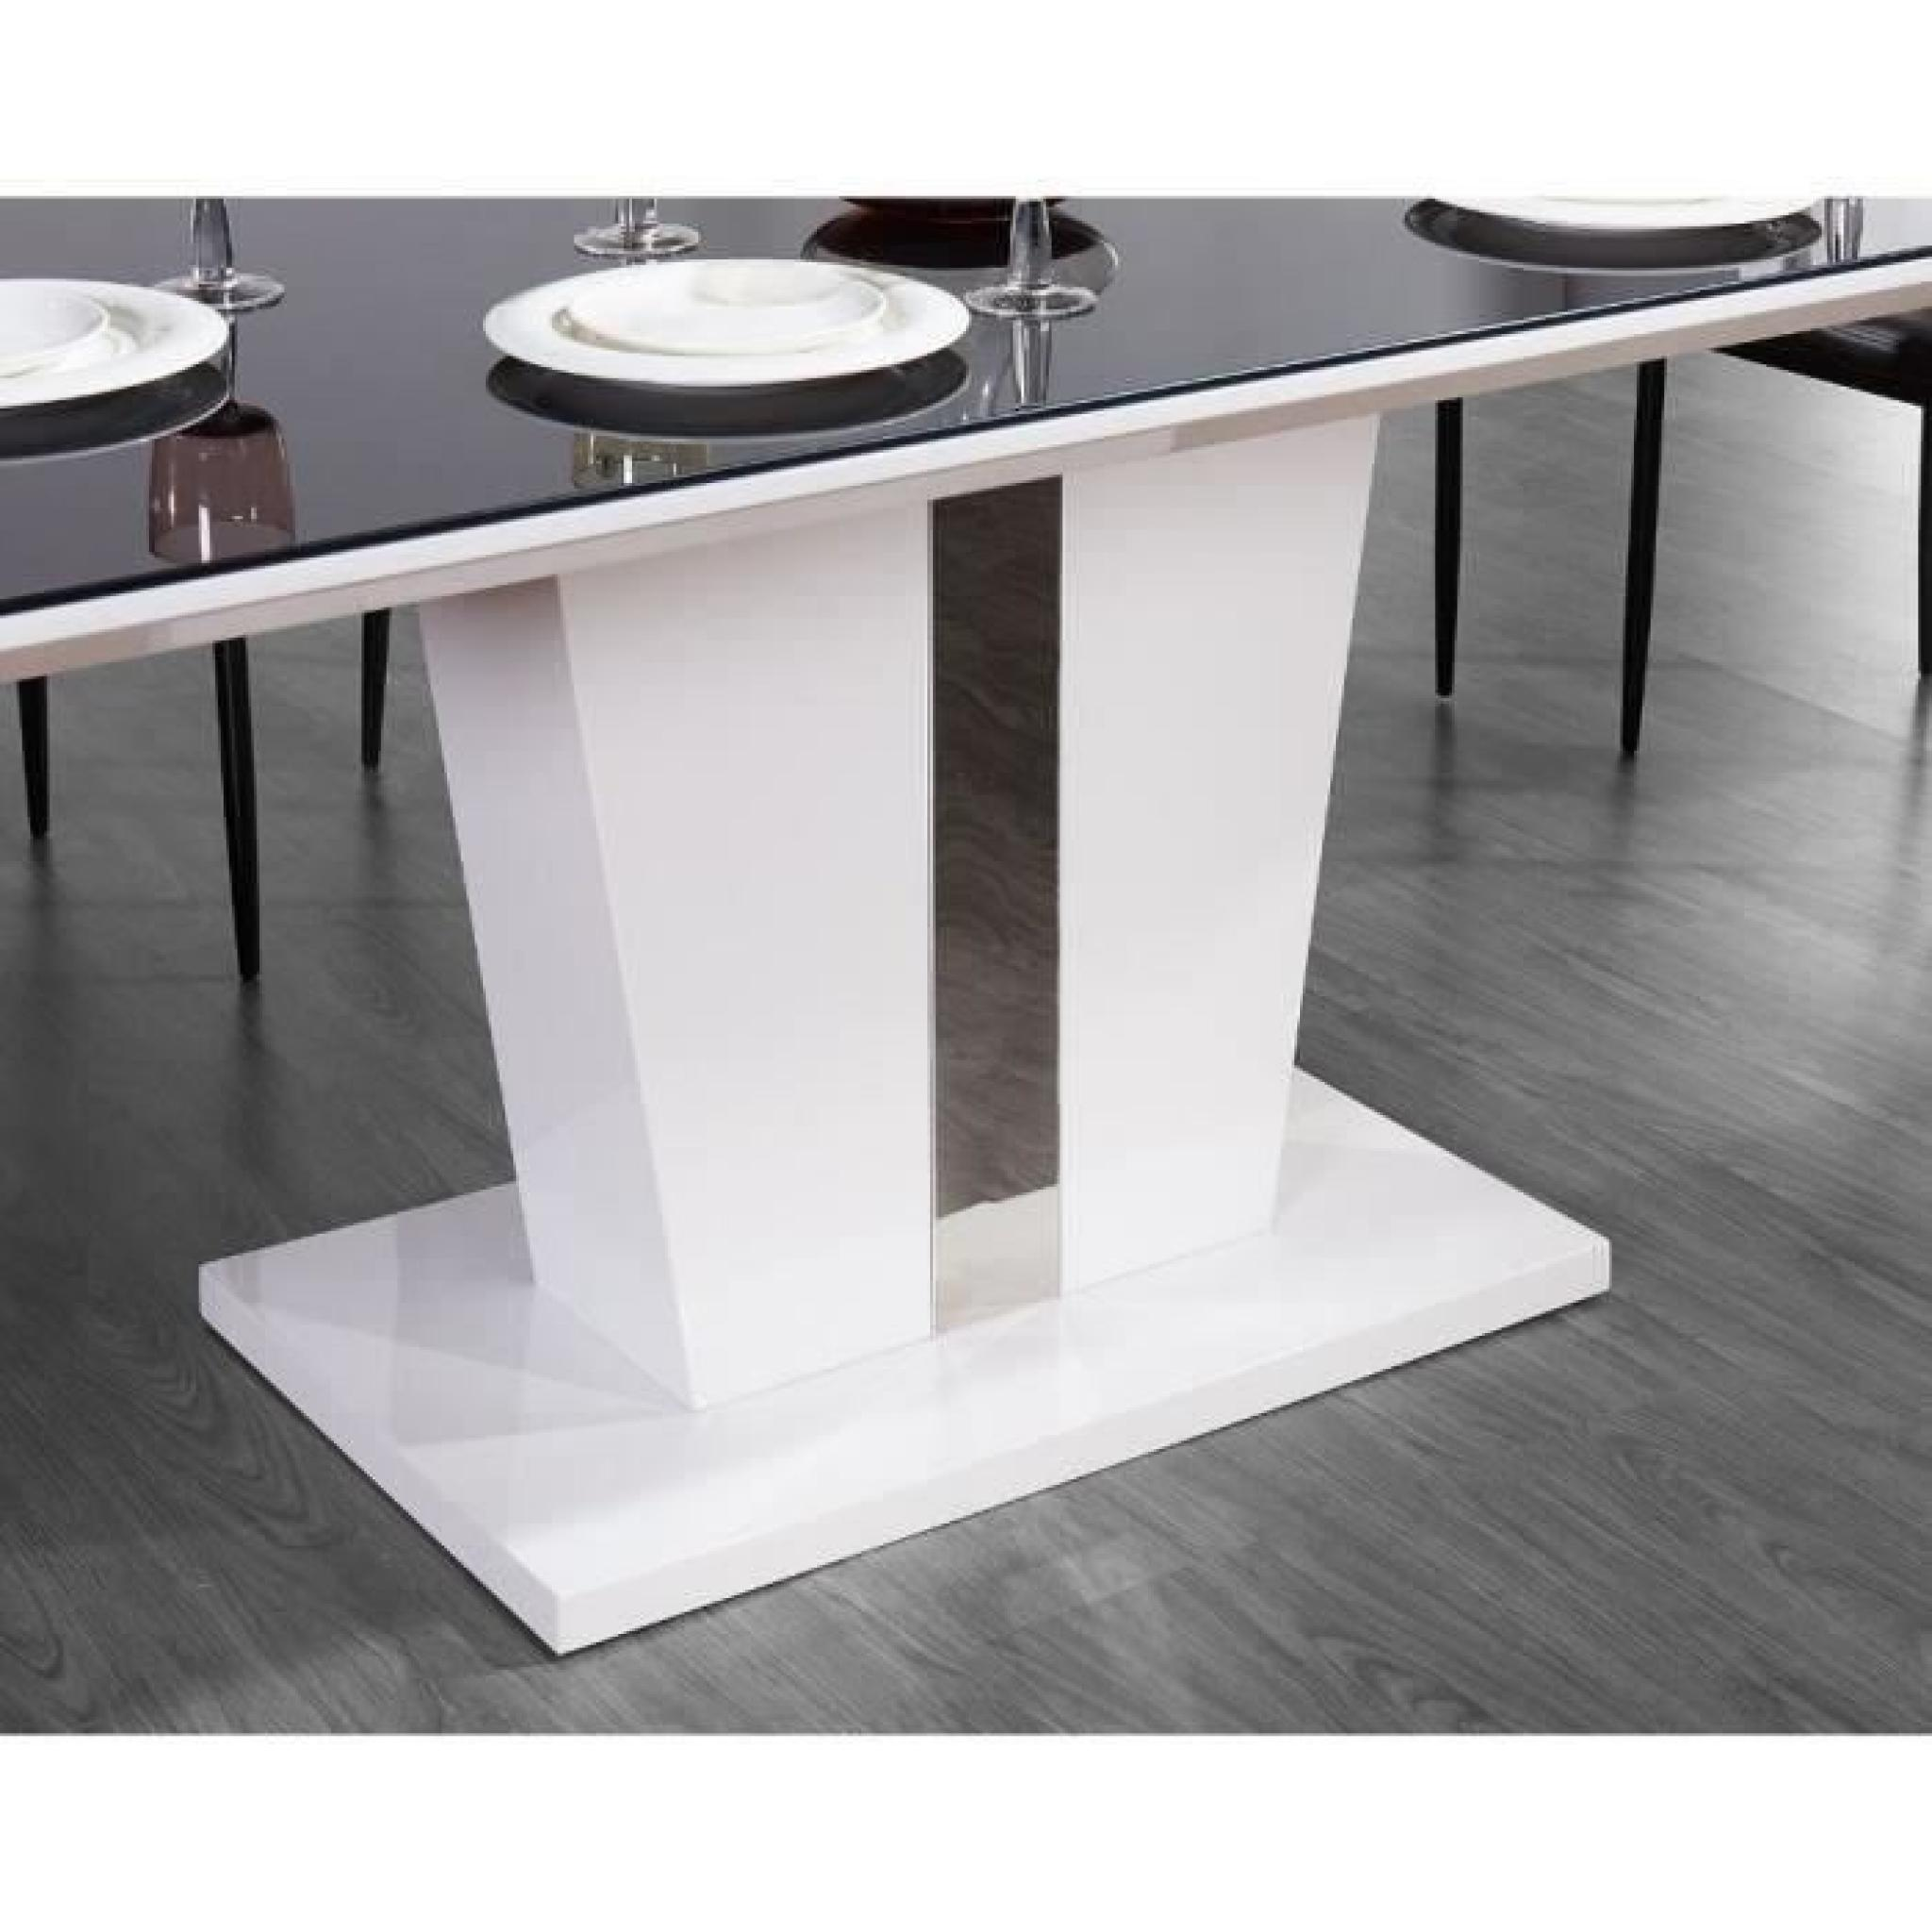 Trevise table manger 180x90cm noir et laqu blanc for Table a manger laque blanc pas cher